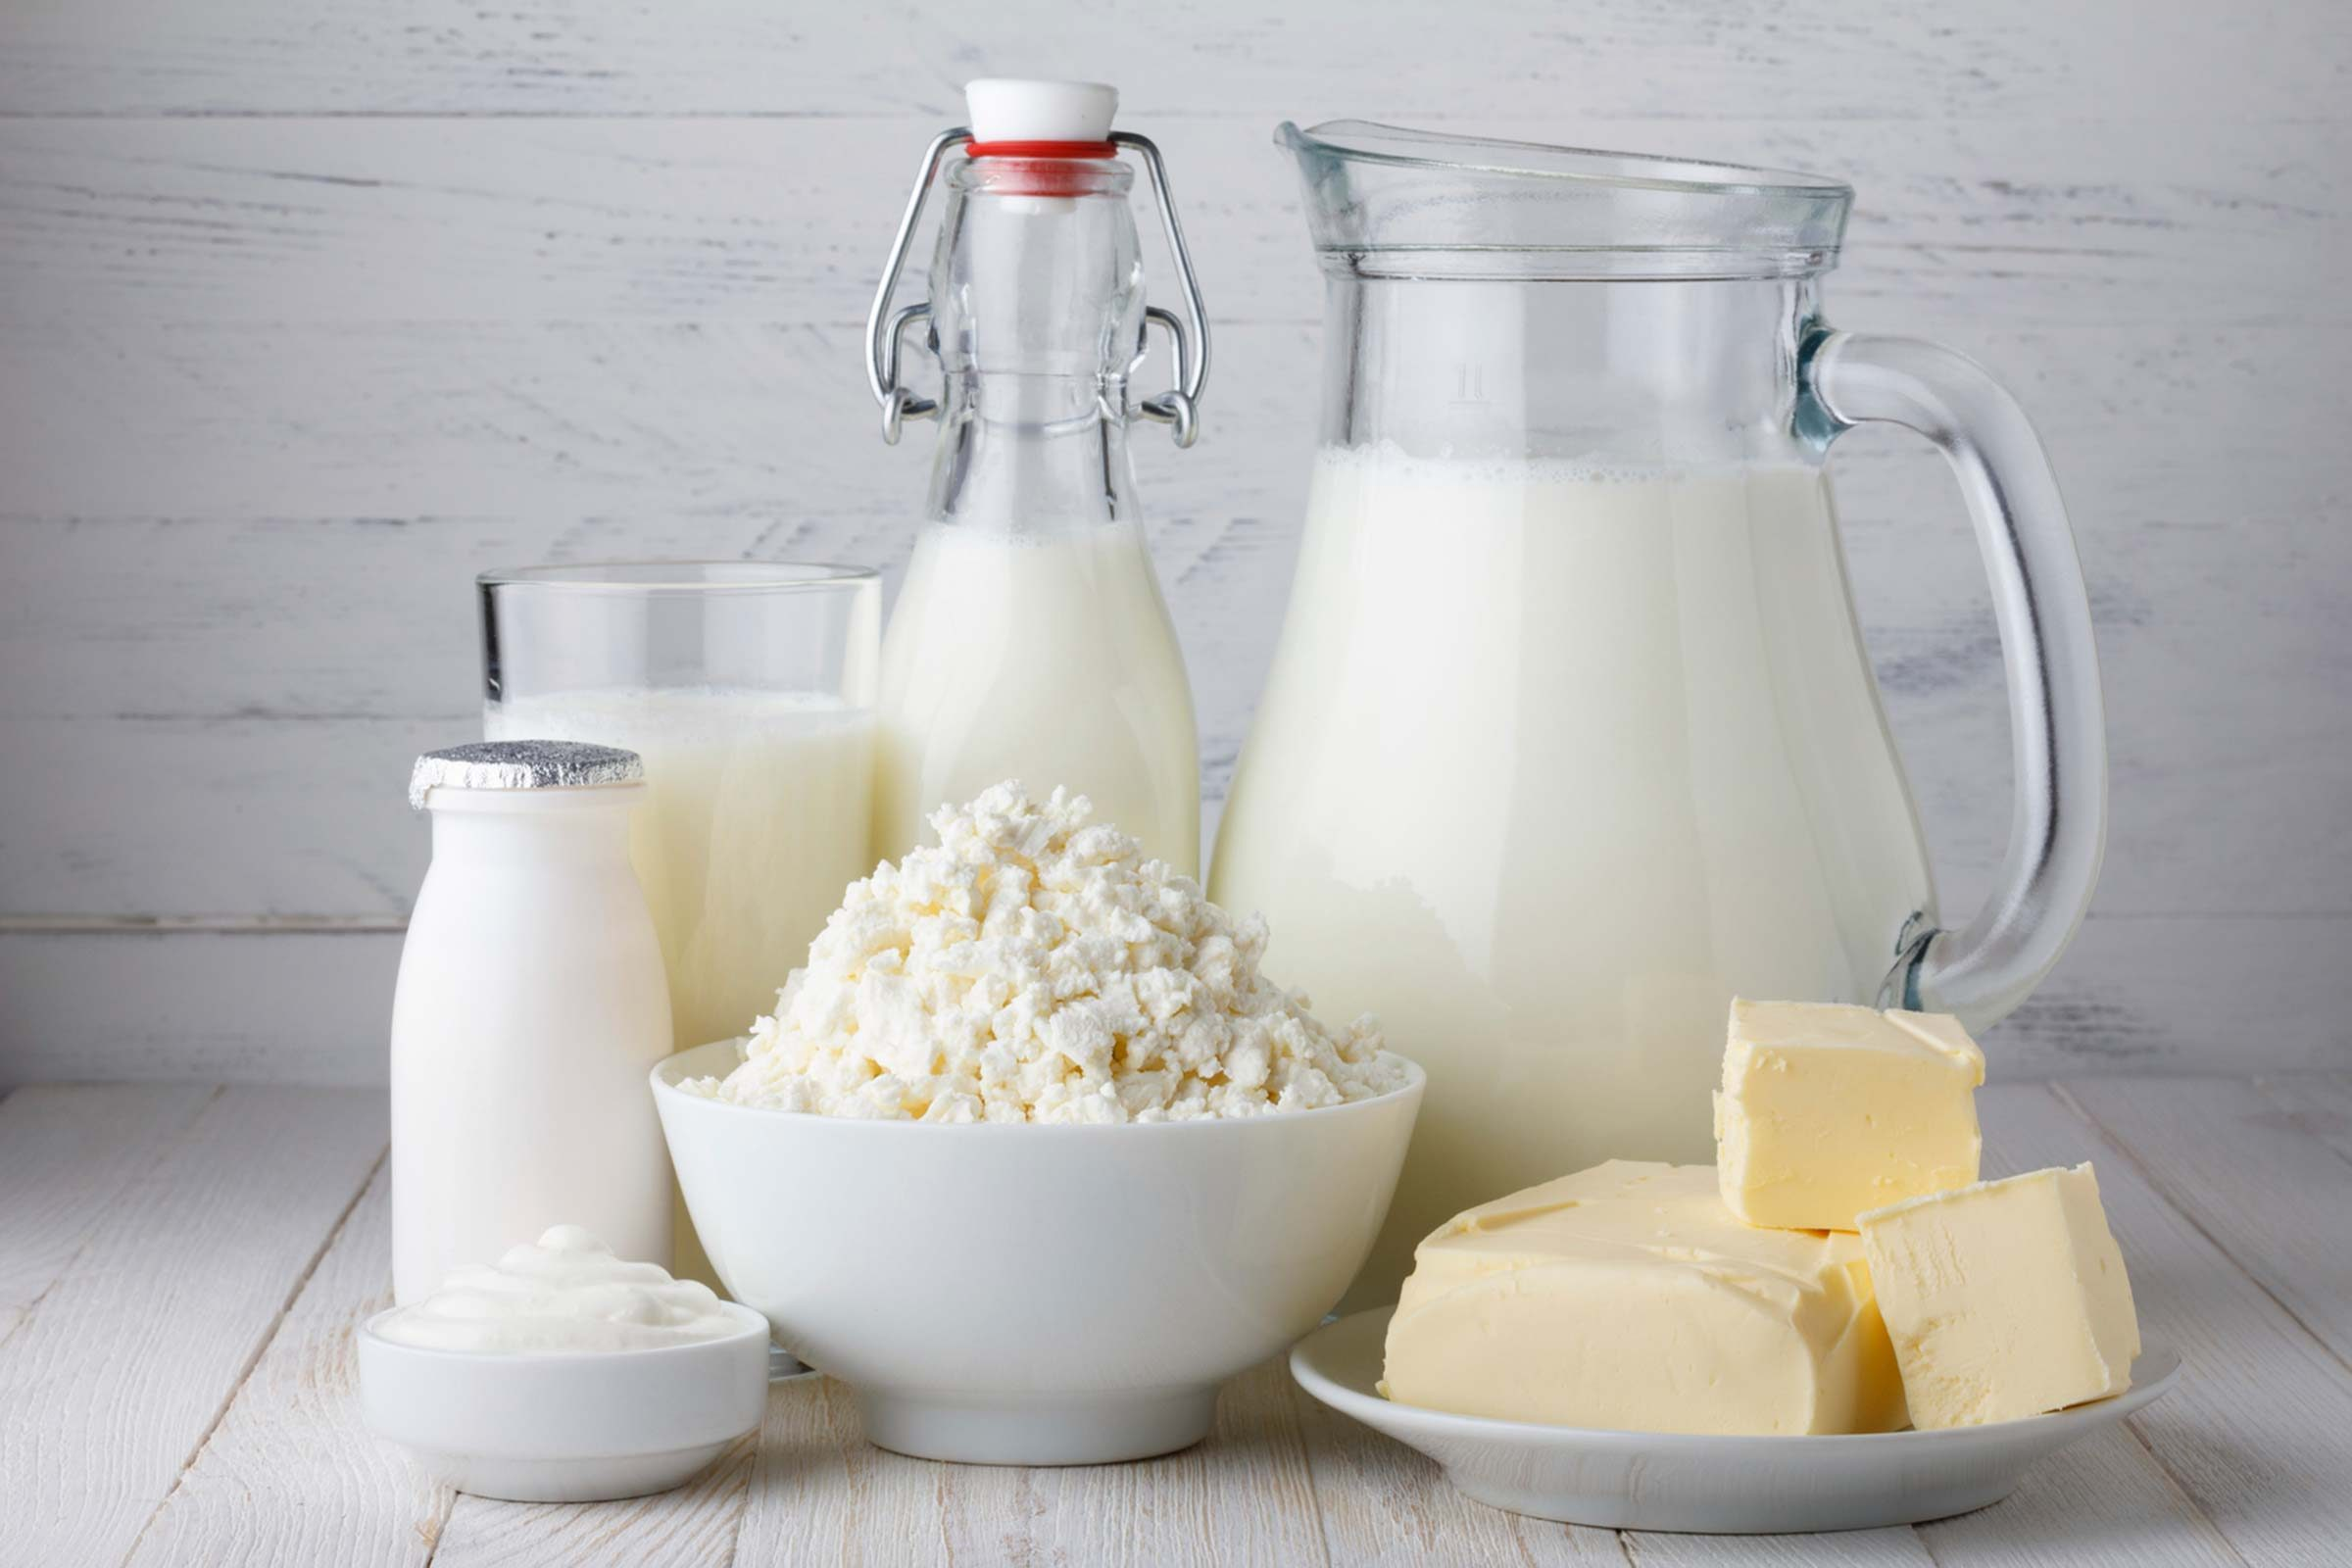 milk, butter, cottage cheese, yogurt and other dairy products